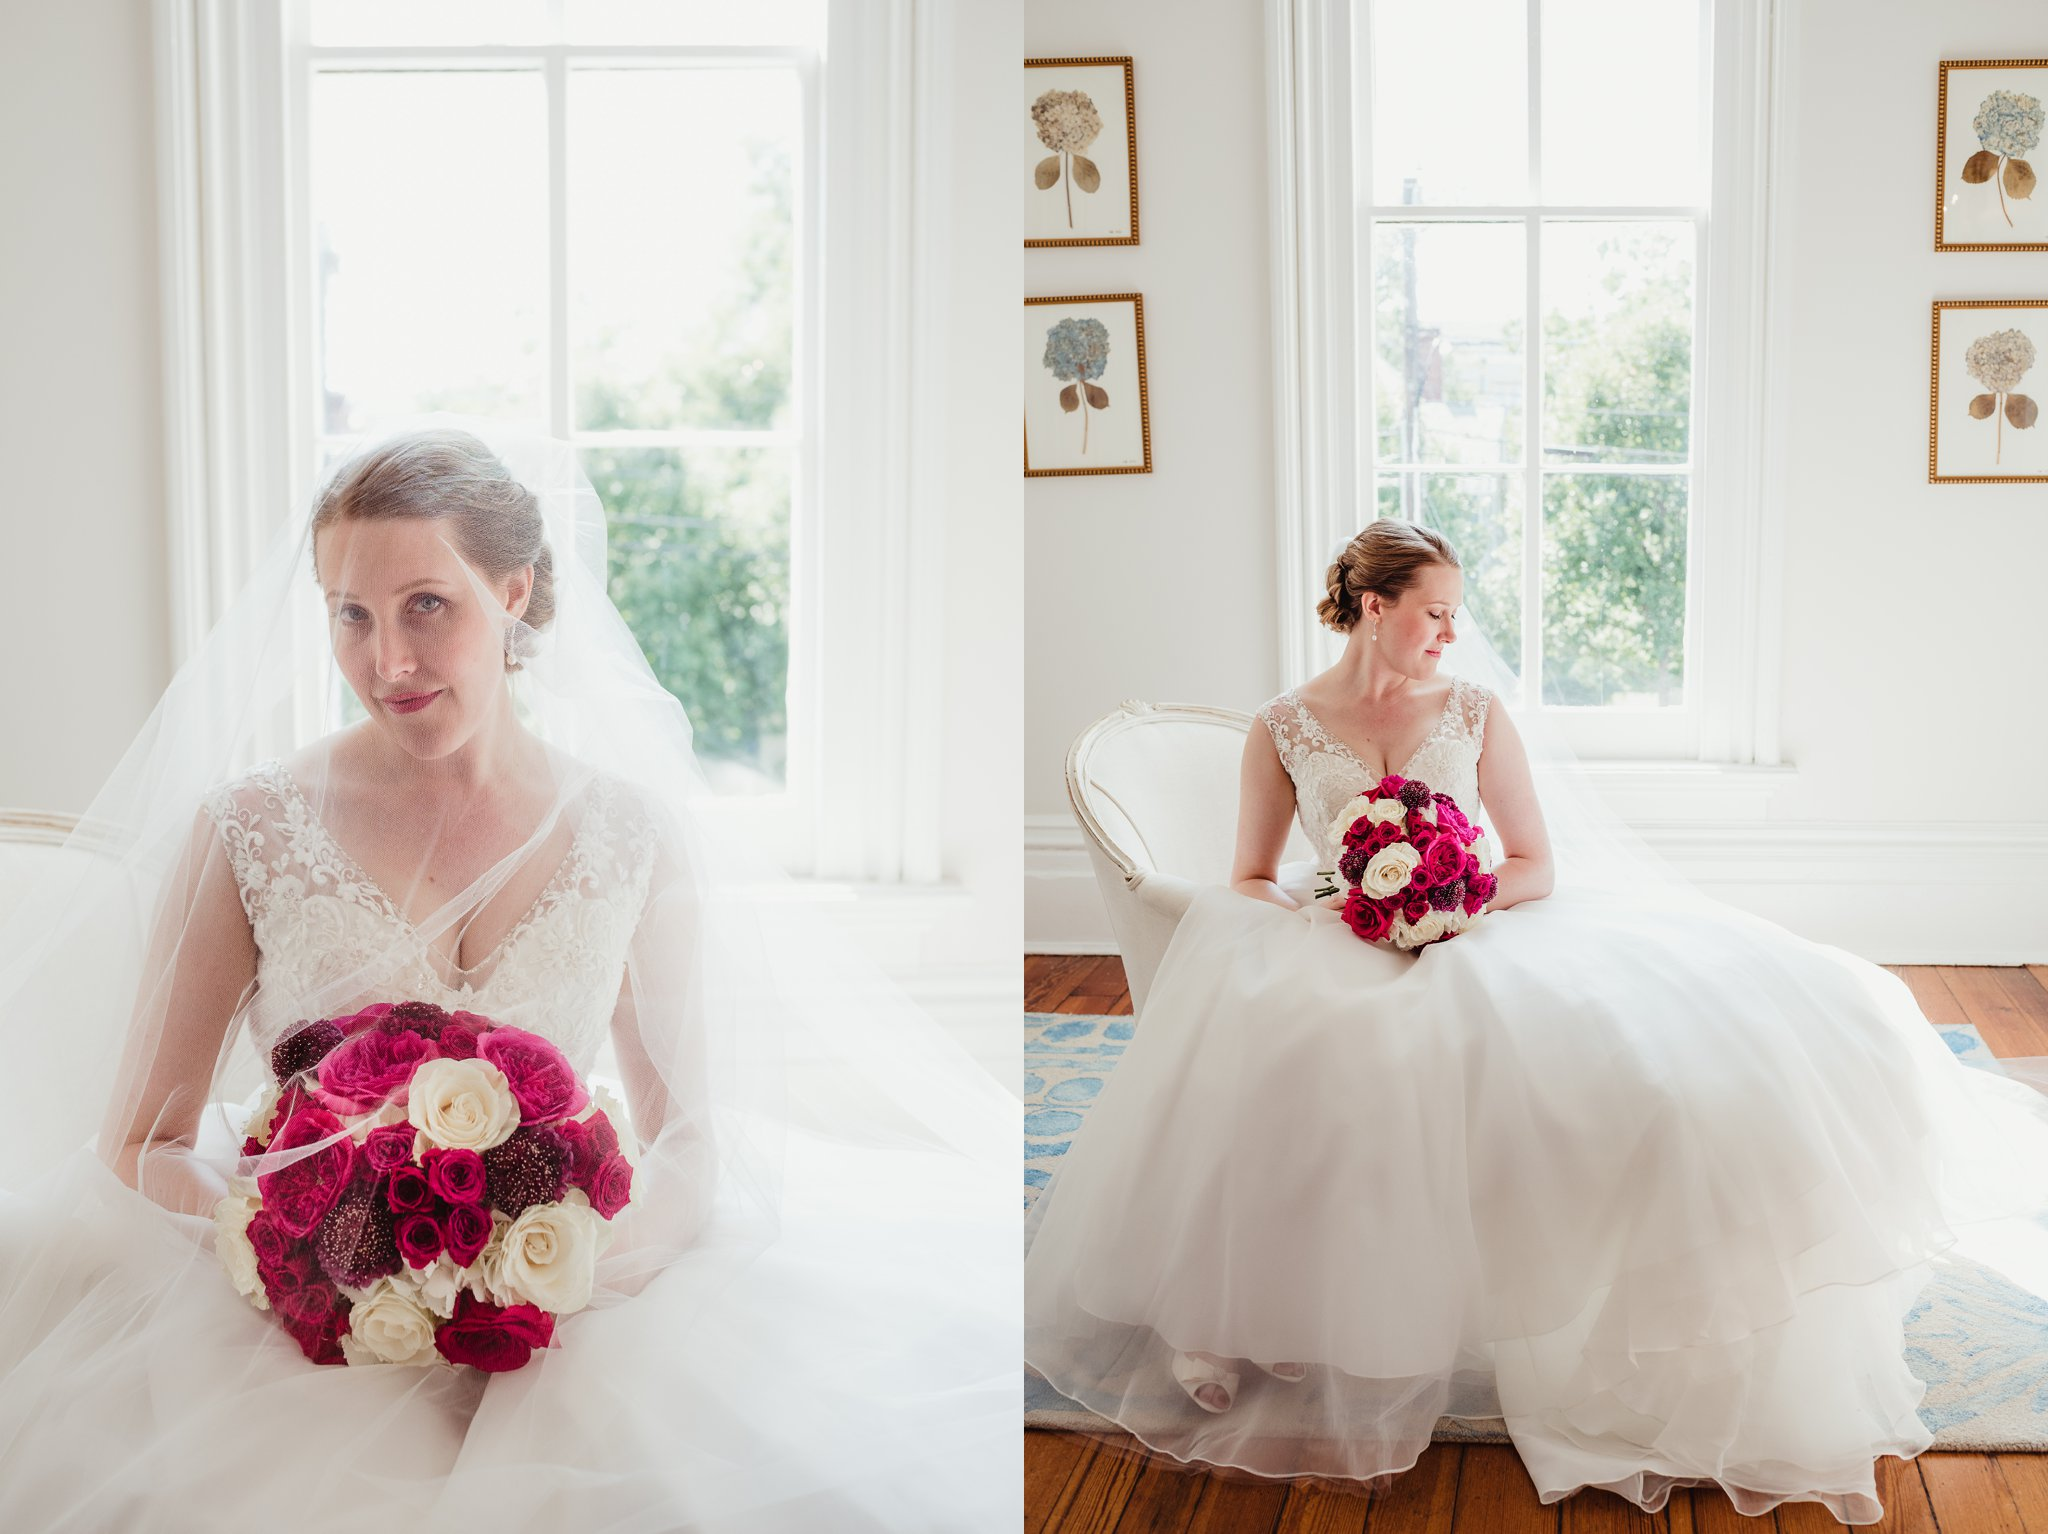 The bride sitting for portraits before her wedding ceremony at the Merrimon Wynne in Raleigh, photos by Rose Trail Images.